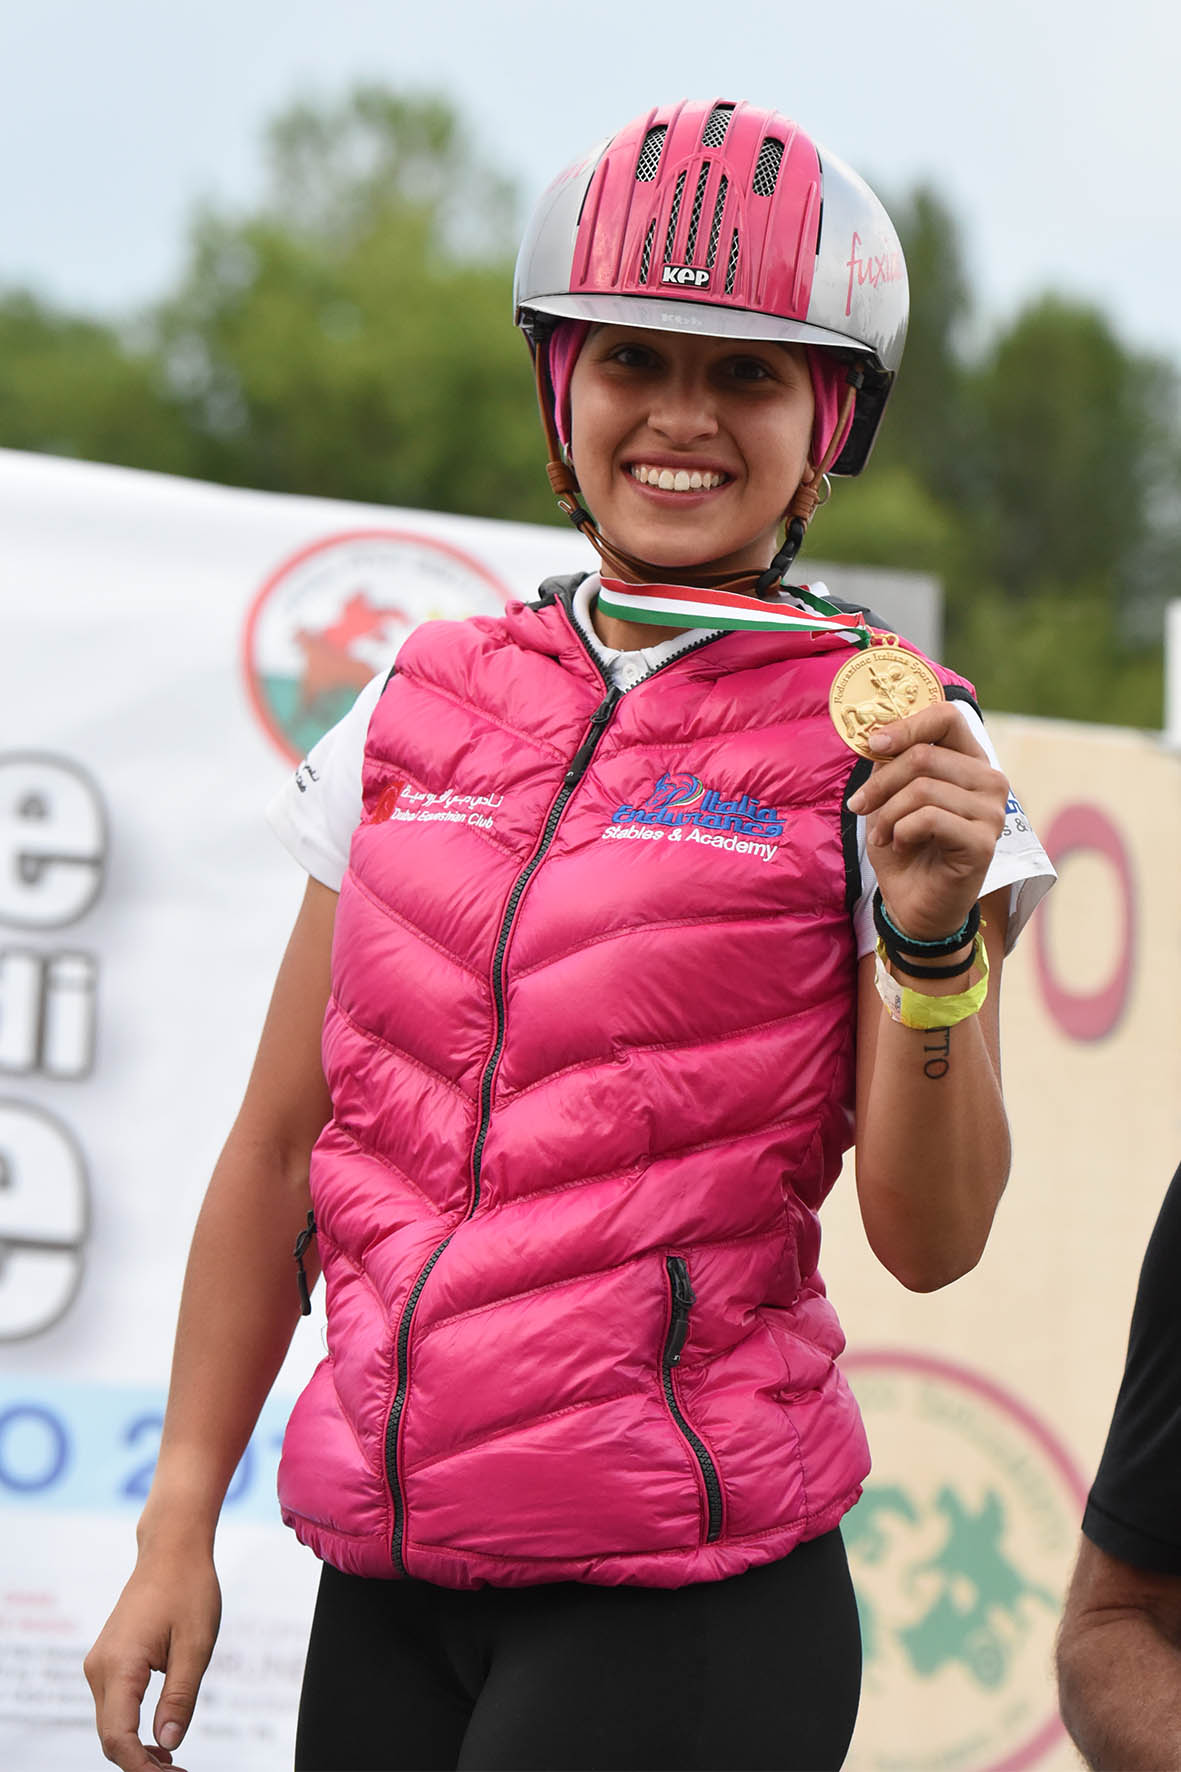 Endurance World Costanza Laliscia. . A happy champion.